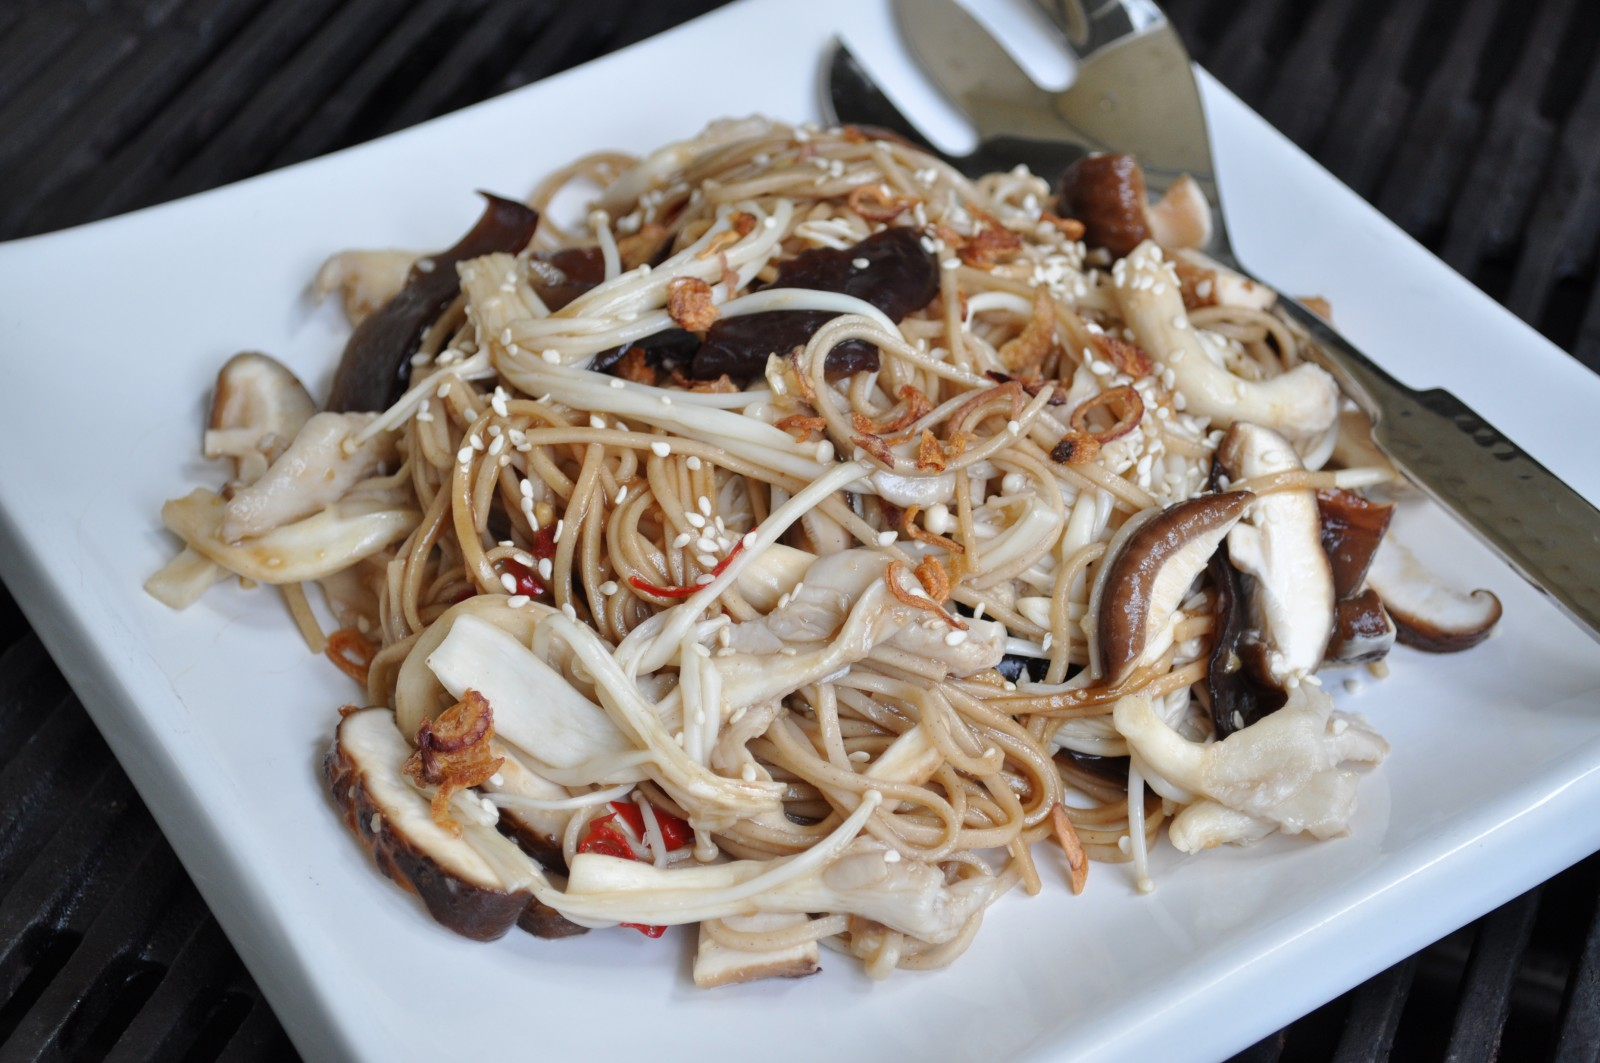 Warm mushroom and soba noodle salad